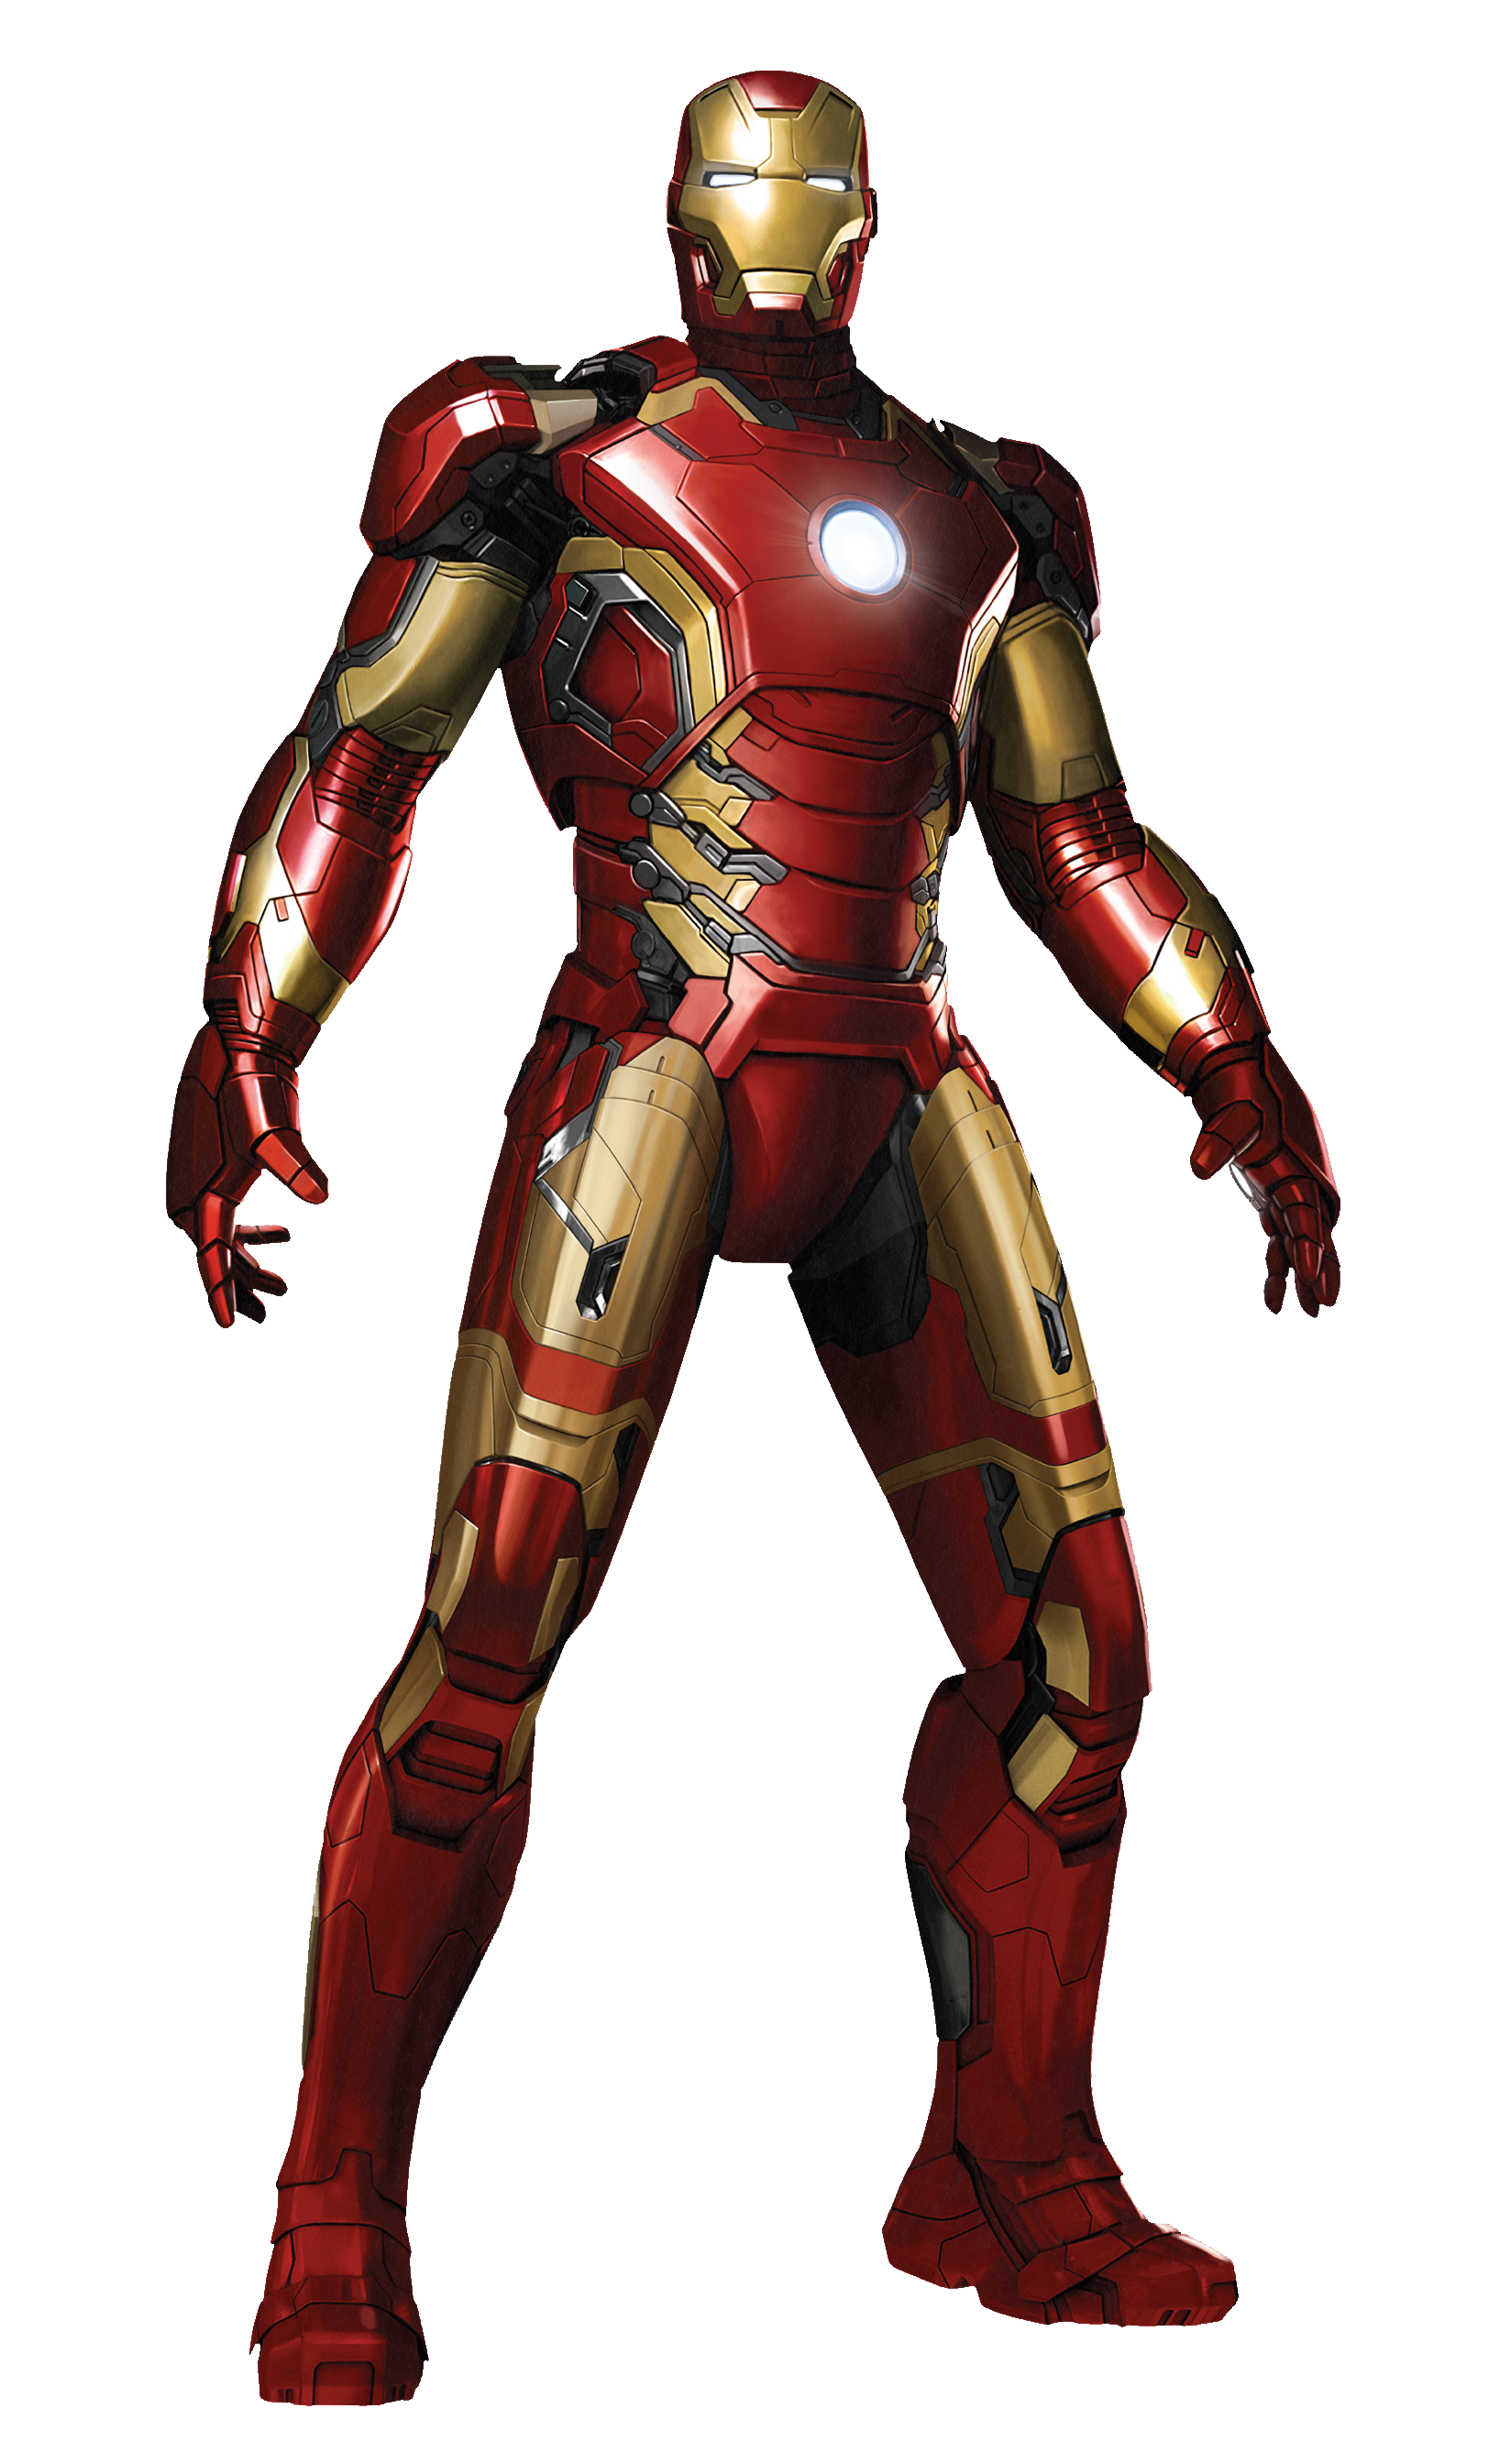 Iron man avengers png. Image photo wiki fandom